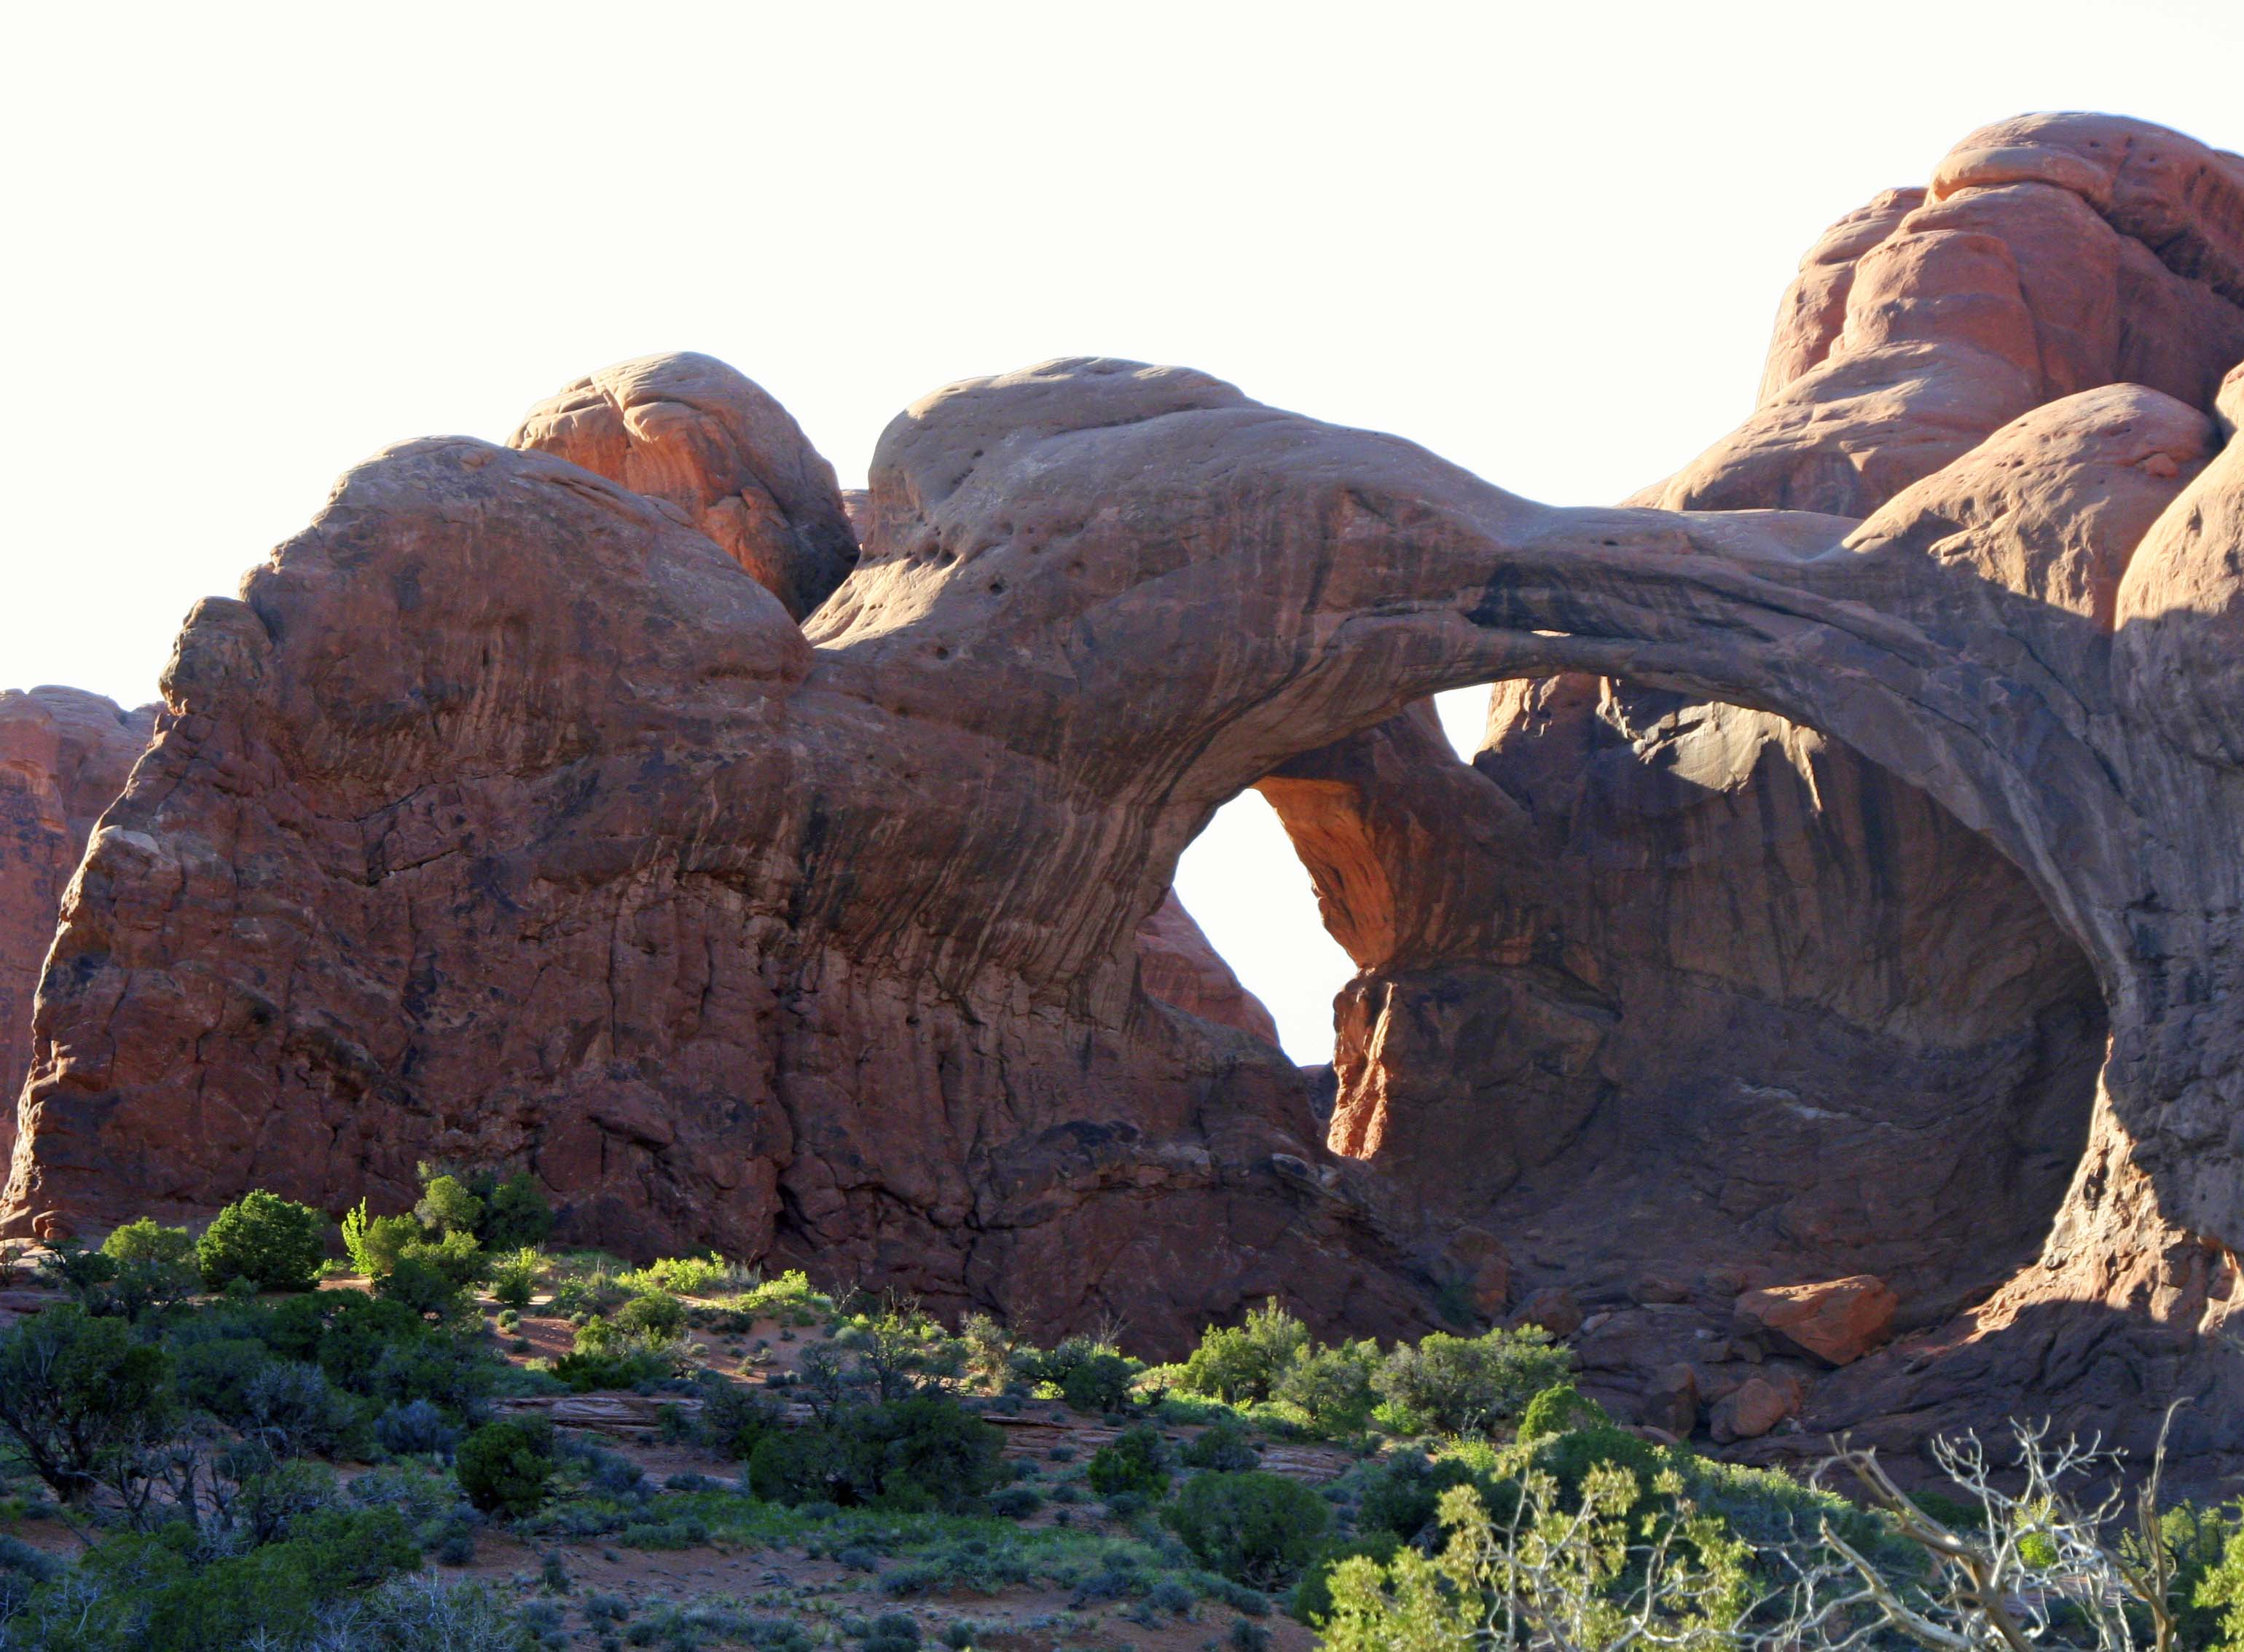 Photo of joining arches at Arches National Park. Photo by Curtis Mekemson.